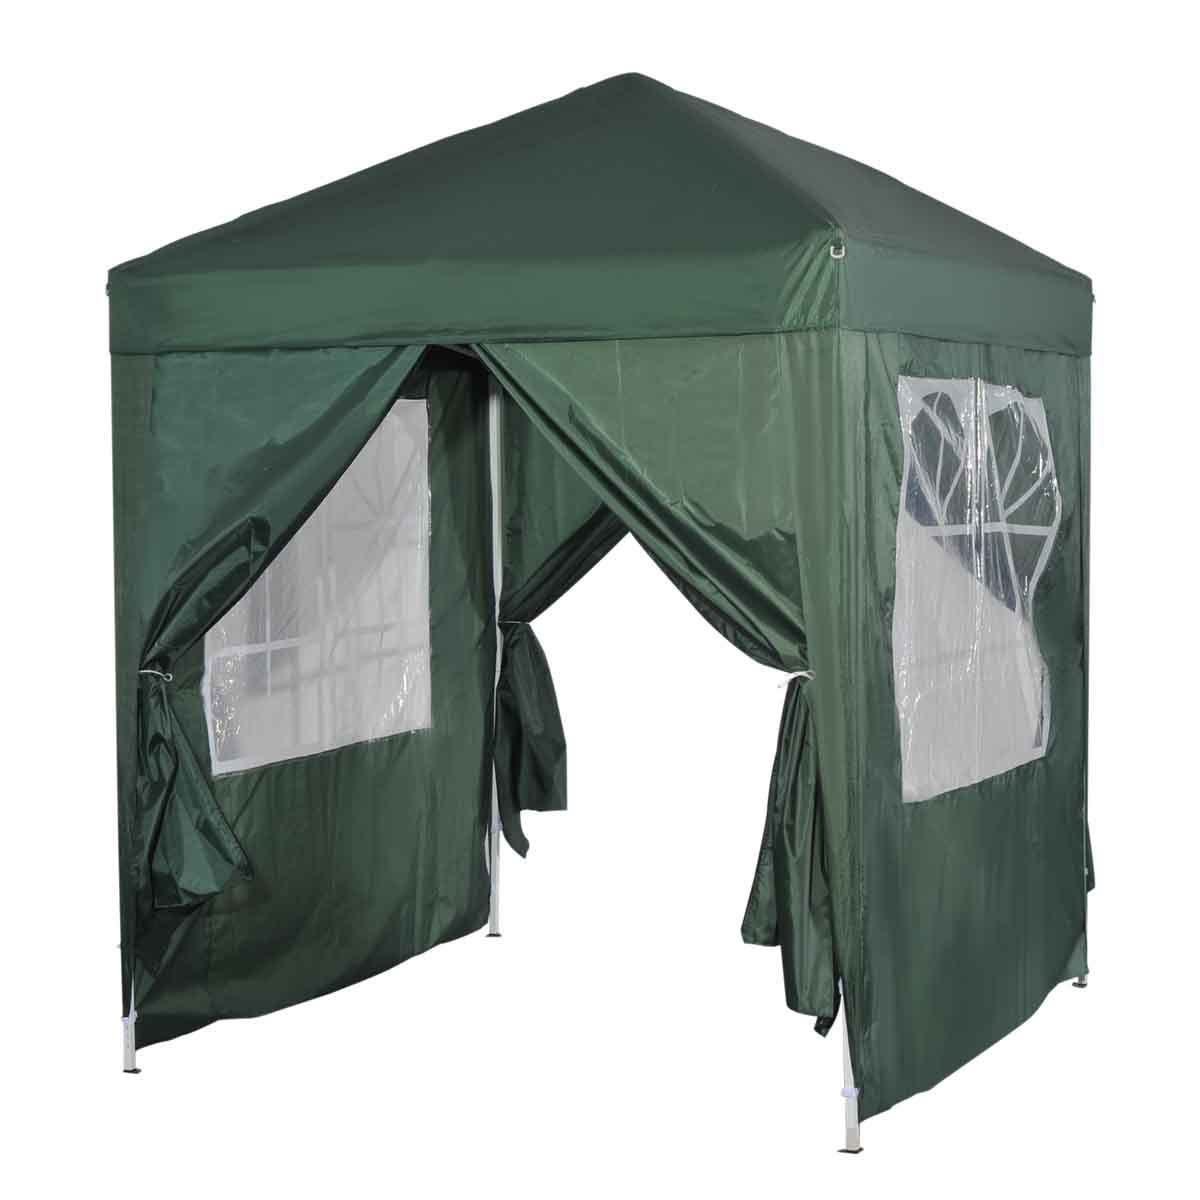 Outsunny 2 x 2m Pop Up Gazebo with Sides - Green